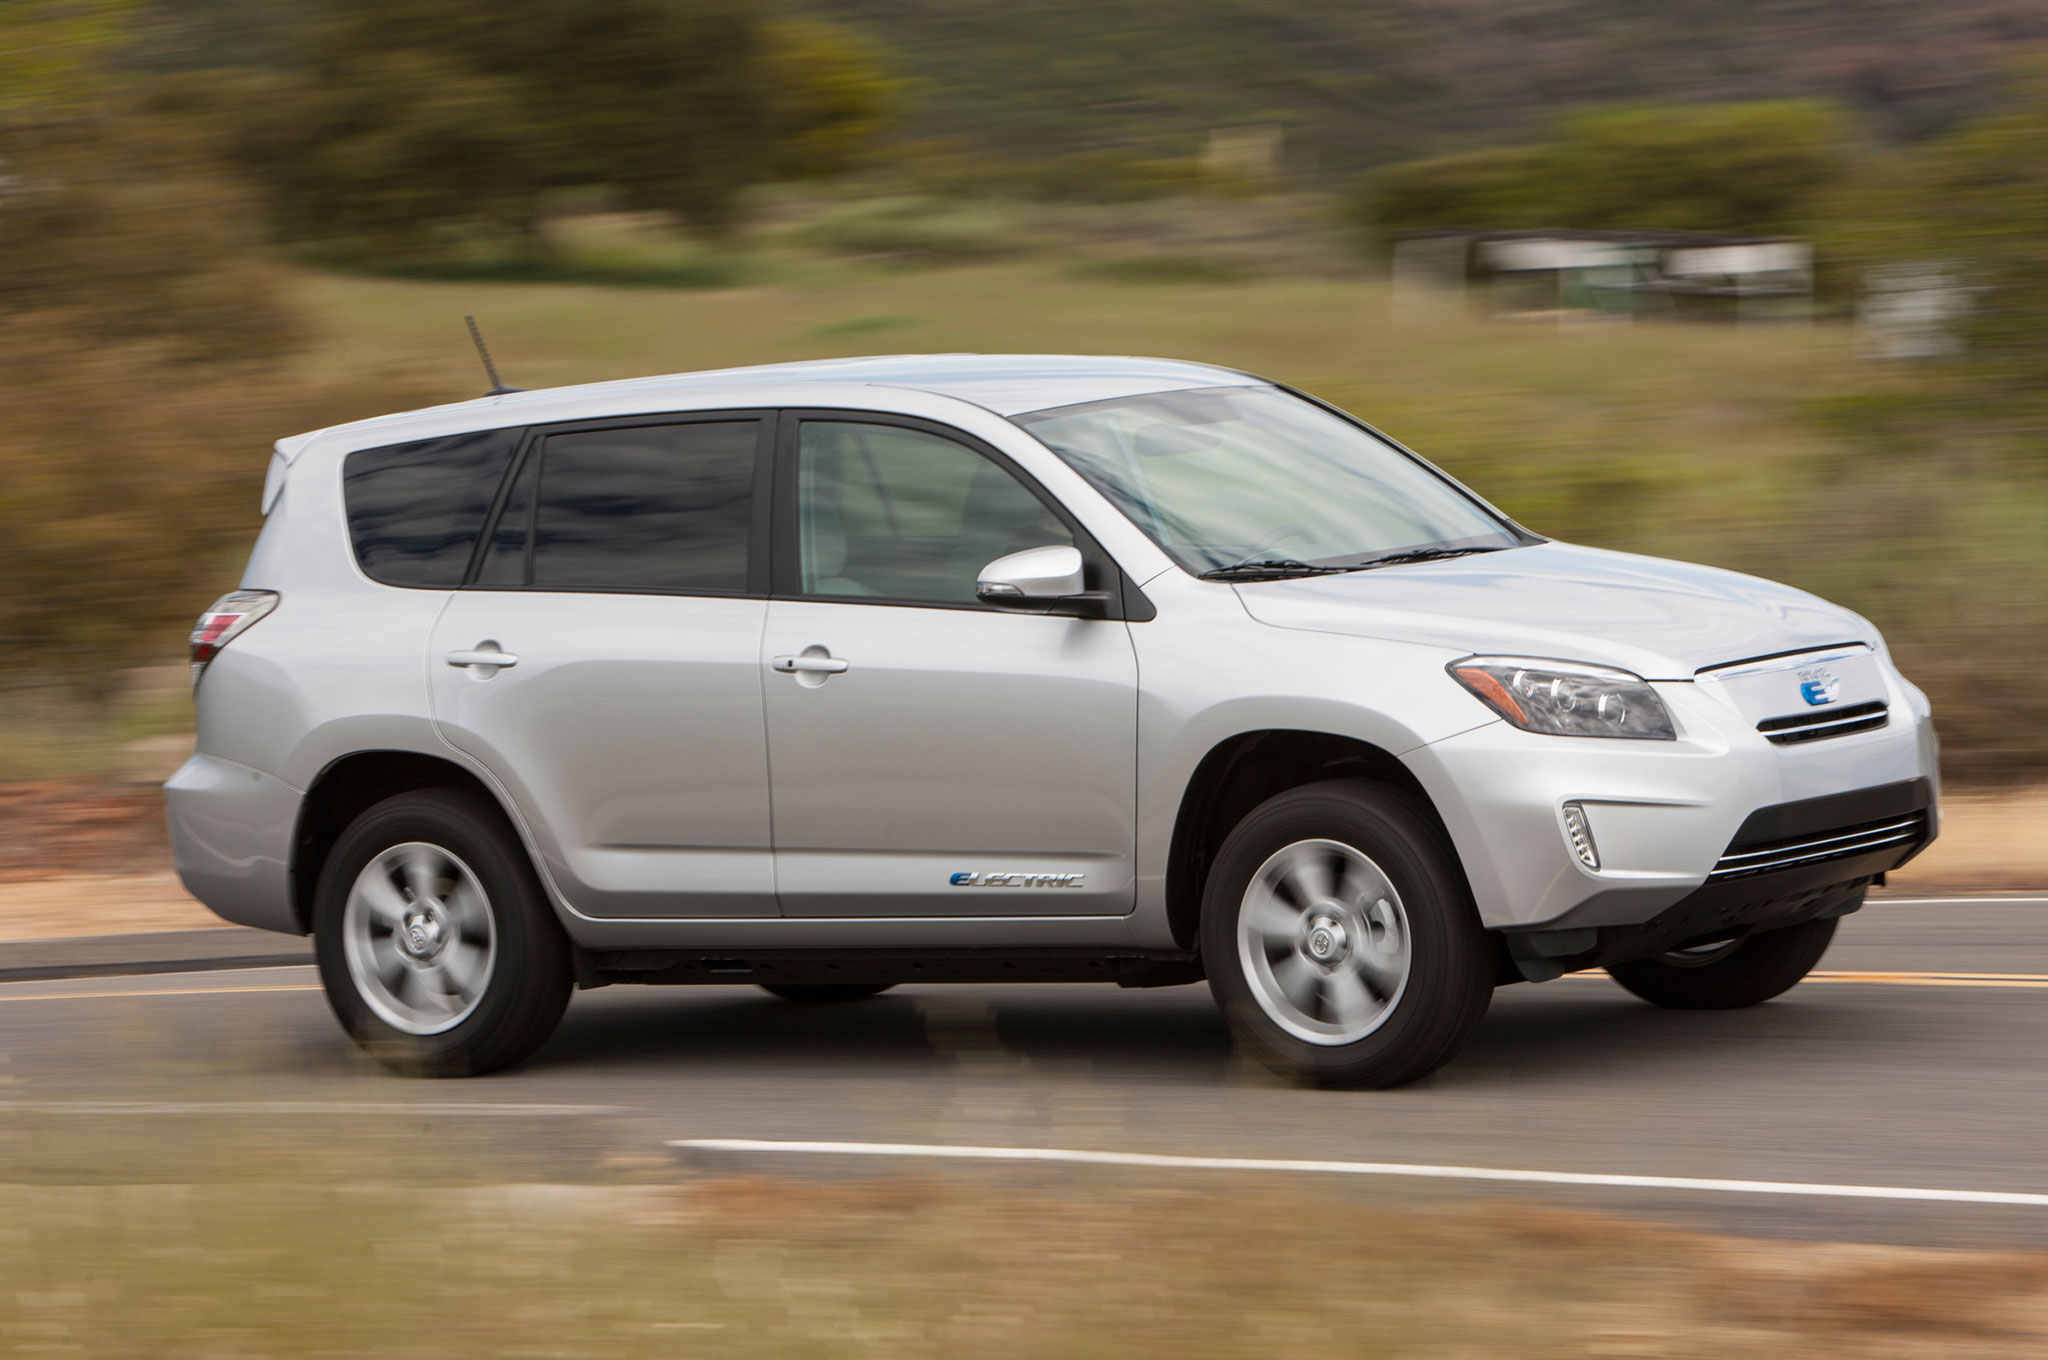 2014 Toyota RAV4 EV In Motion Three Quarters Front View 0031